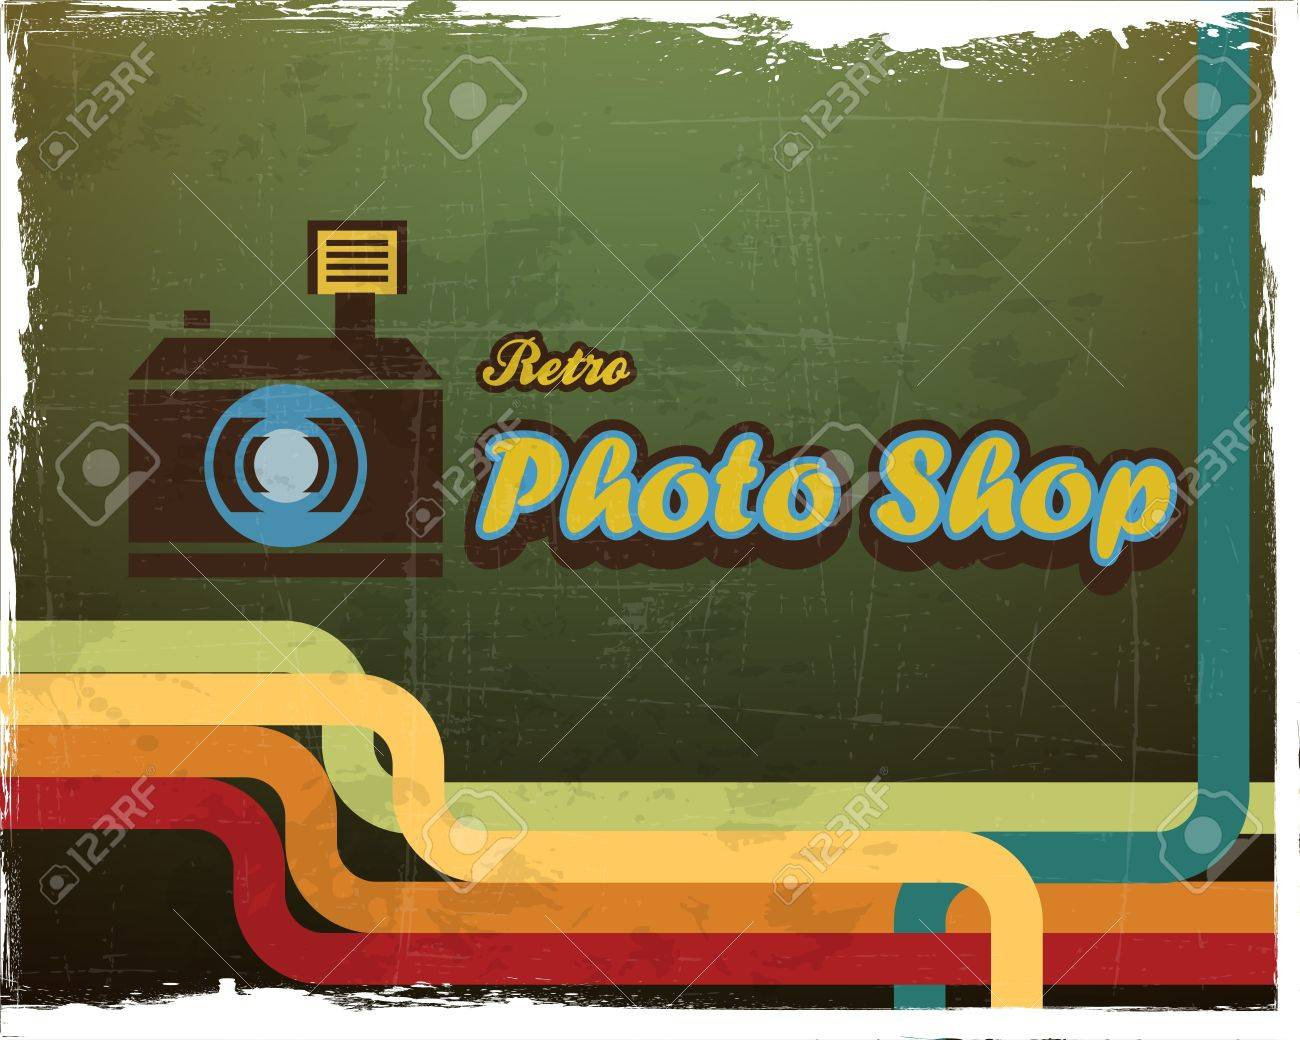 Grunge Camera Effect : Vintage poster with camera and grunge effect royalty free cliparts